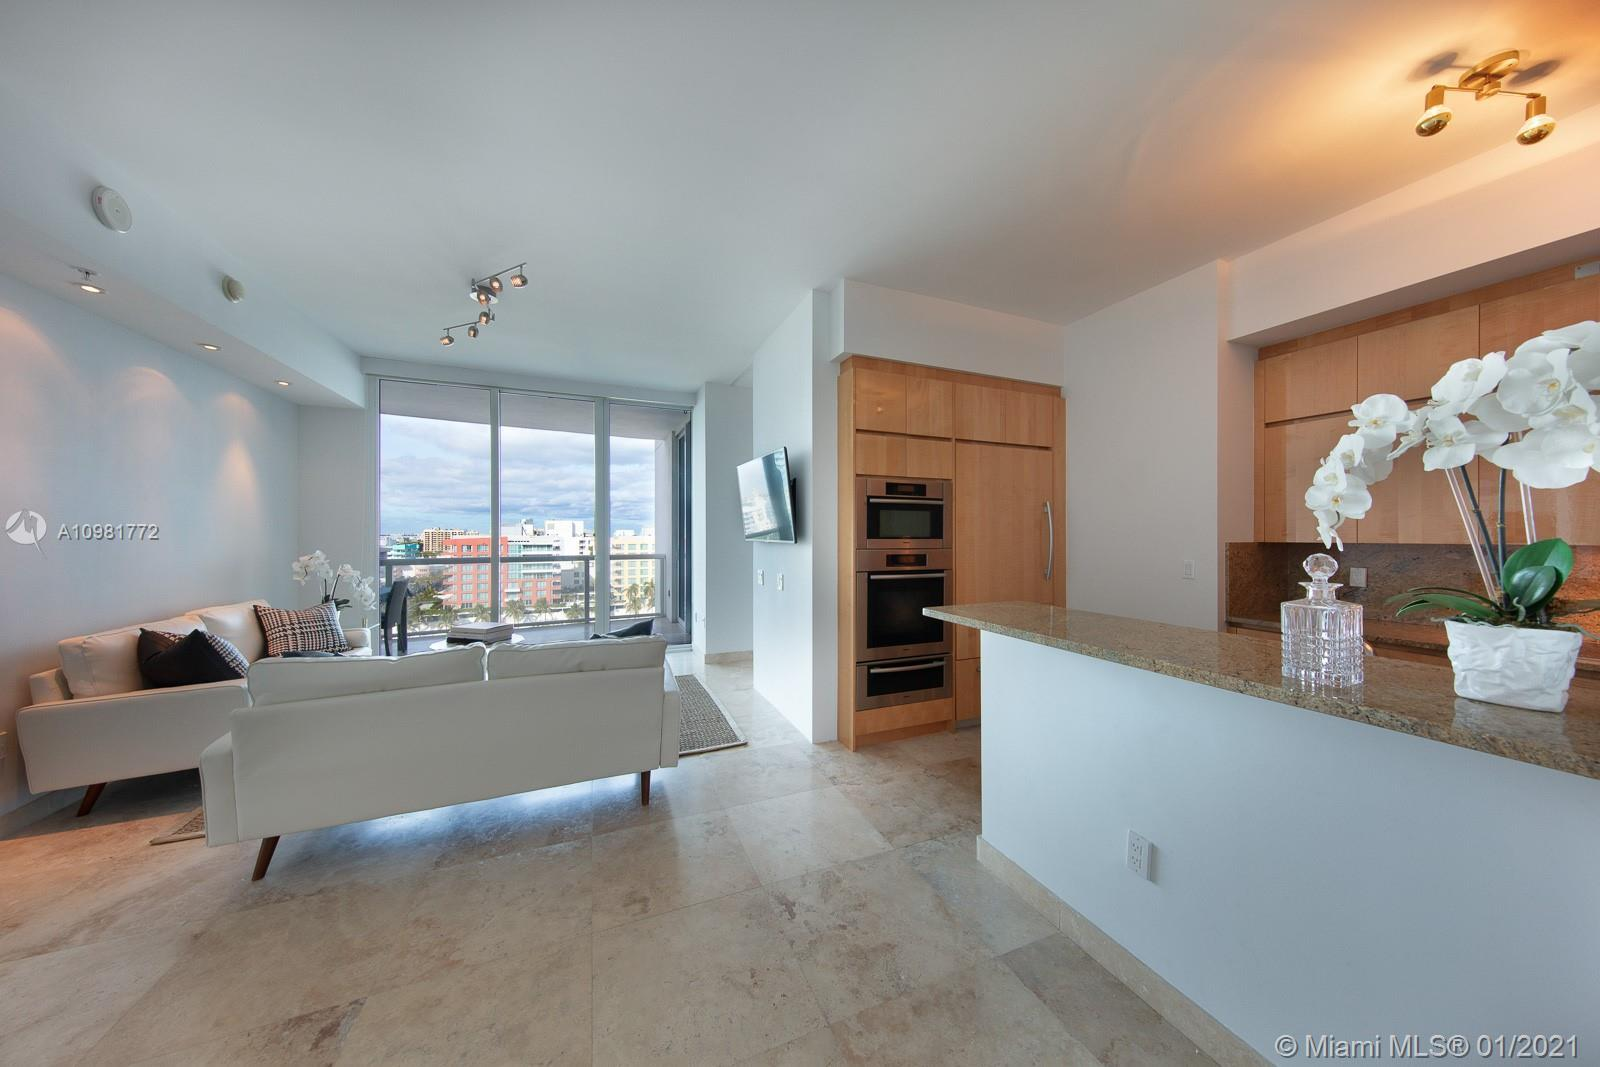 Sunlight filled 2 bedrooms and 2.5 baths split floor plan with private foyer, marble floors, 10' cei